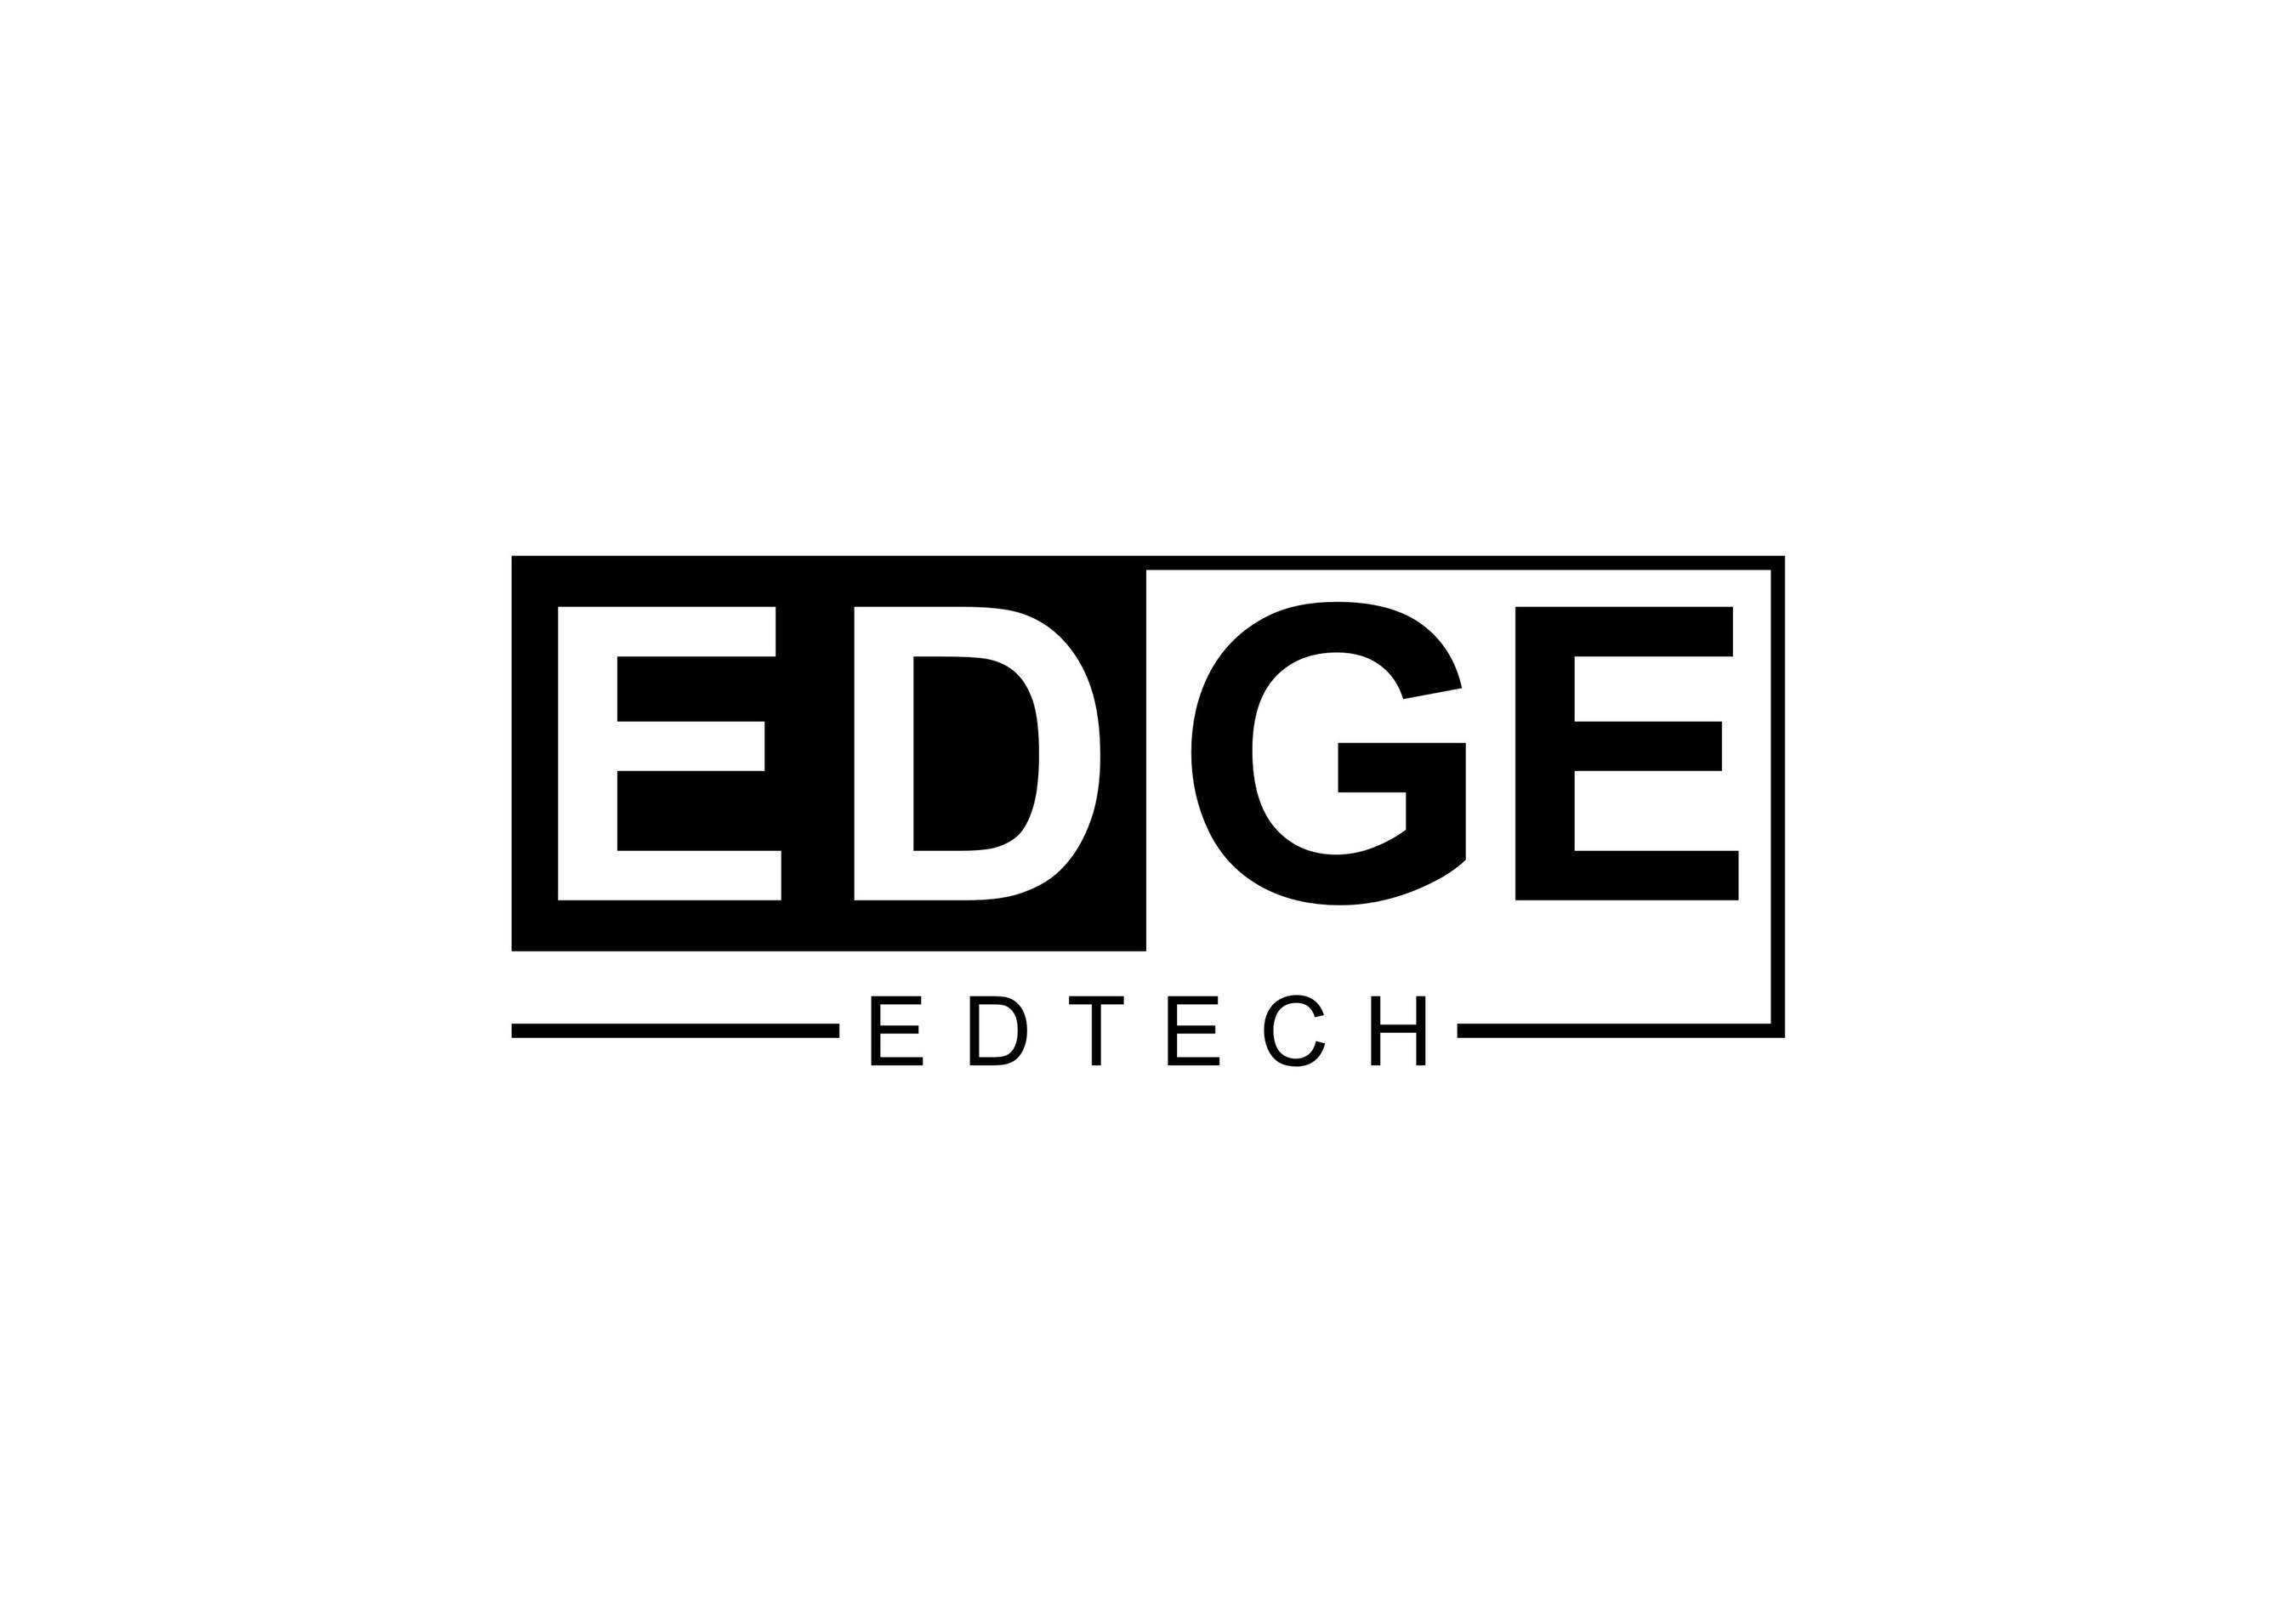 EDGE Edtech' Launches Accelerator in New York City for Education Technology Start-Ups, Offering $170,000 in Funding to Ten Selected Companies